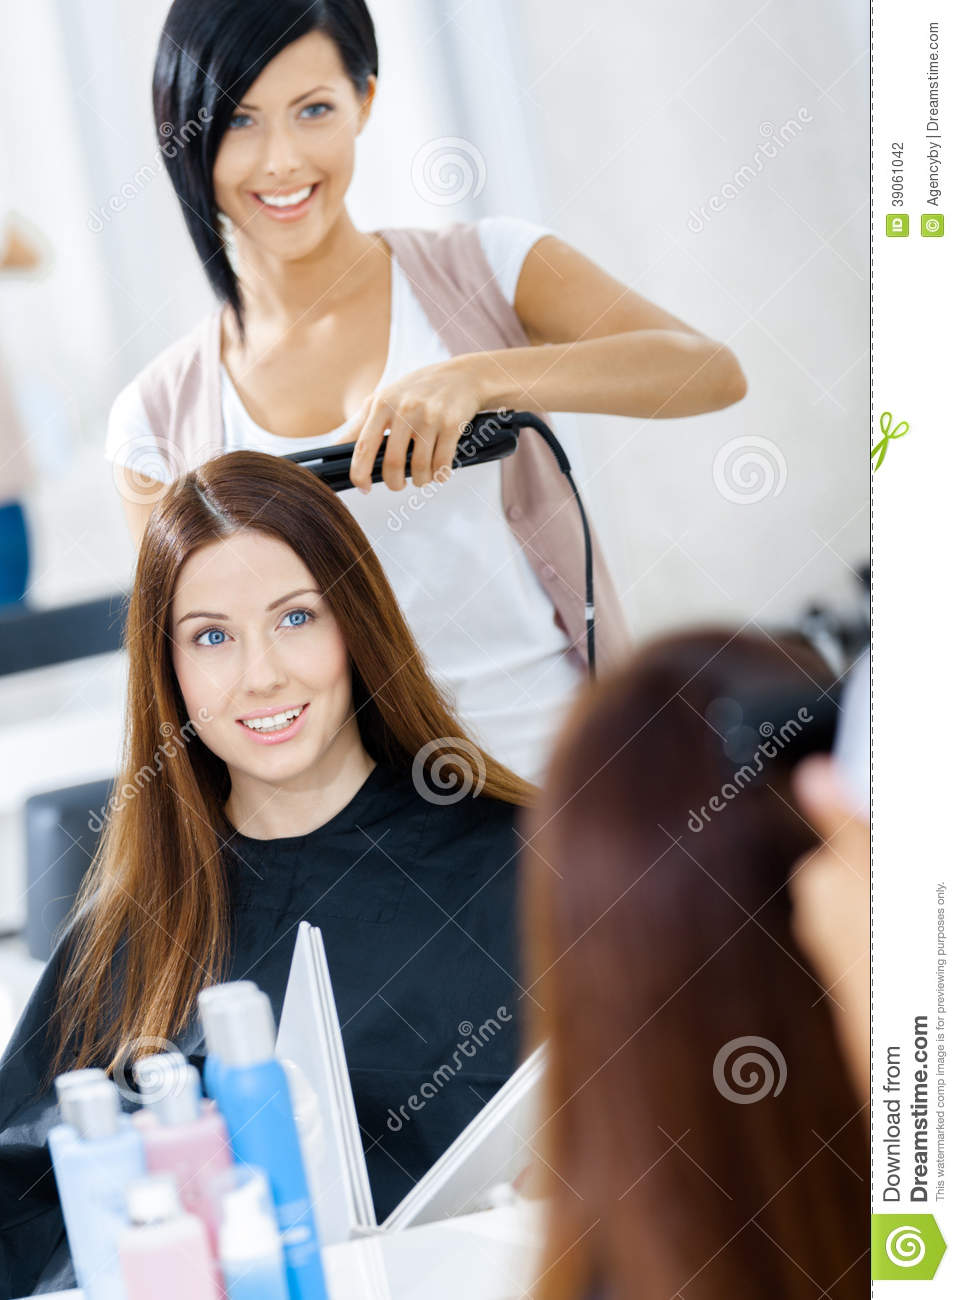 Reflection Of Hair Stylist Doing Haircut For Woman Stock Photo Image 39061042